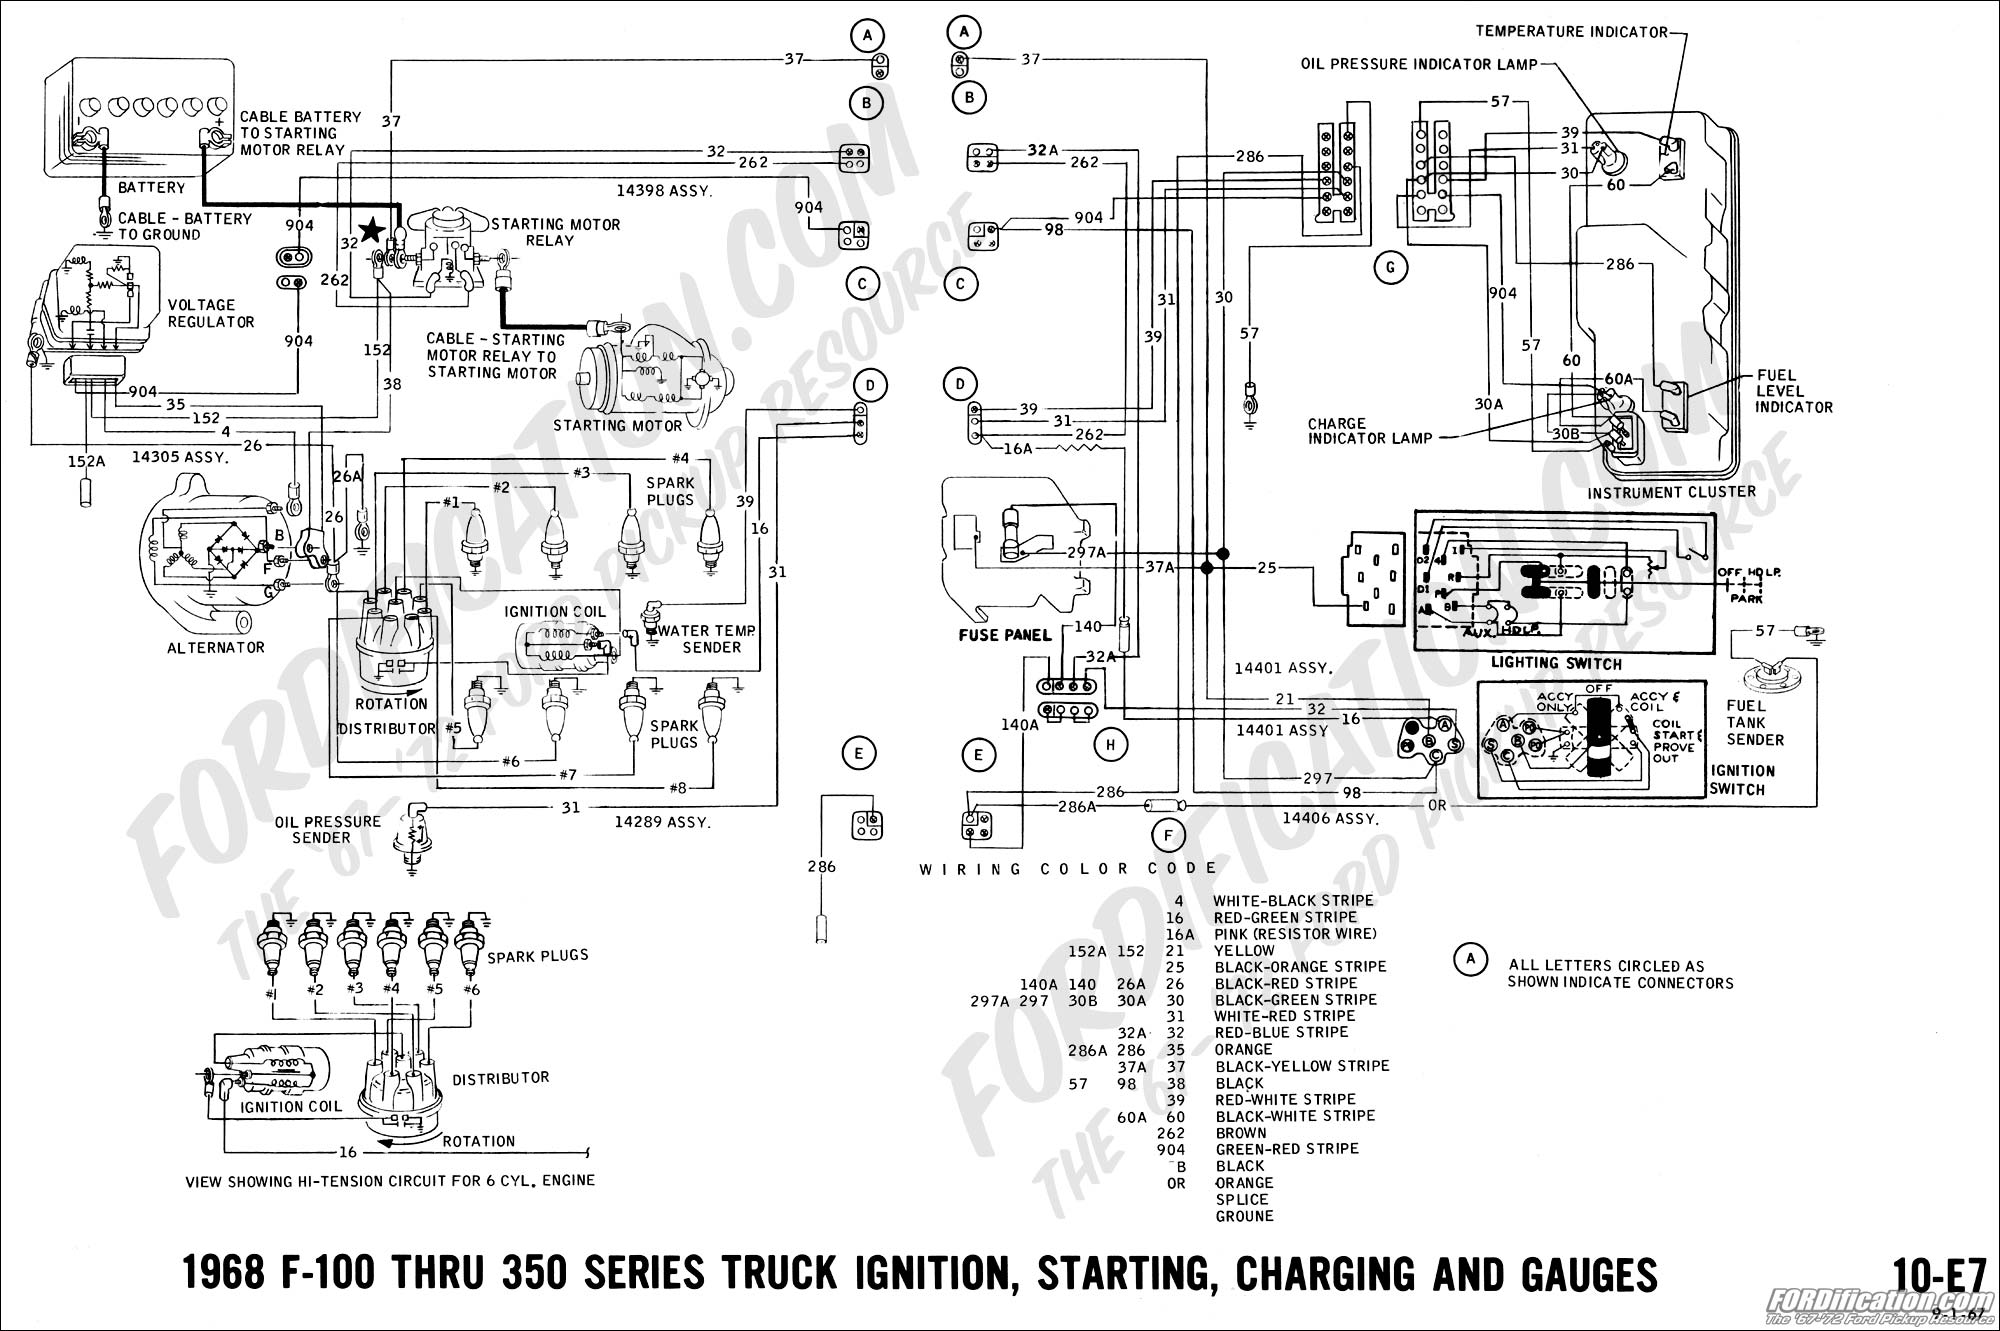 1995 Ford F150 Engine Wiring Diagram Worksheet And Harness For 95 1967 Detailed Schematics Rh Jvpacks Com F 150 Starting